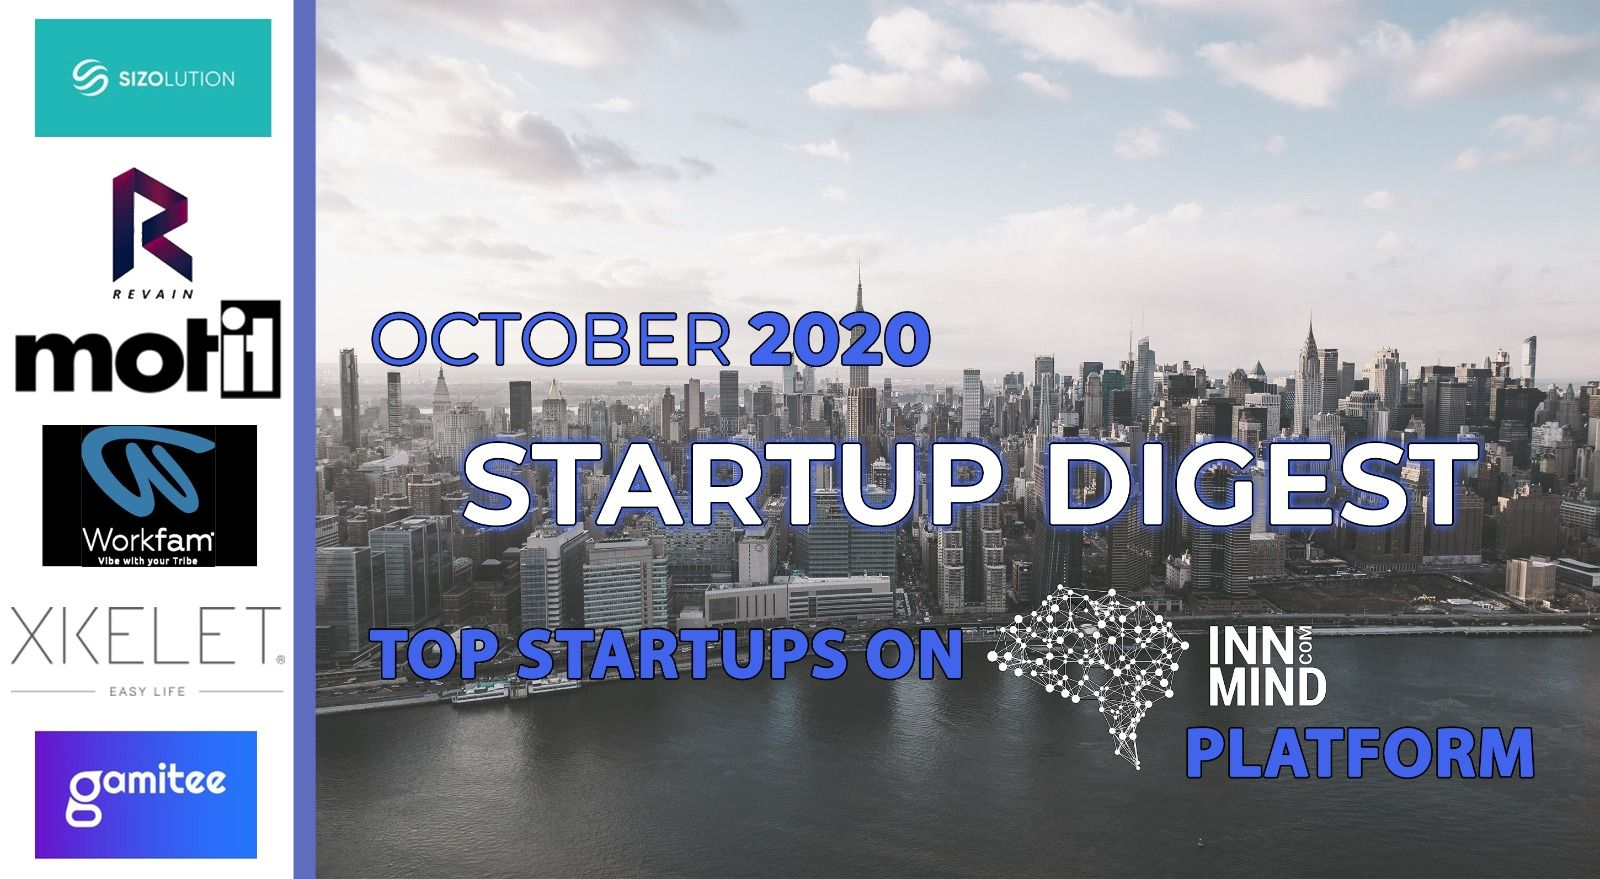 October 2020 Startup Digest: Top Startups on InnMind Platform